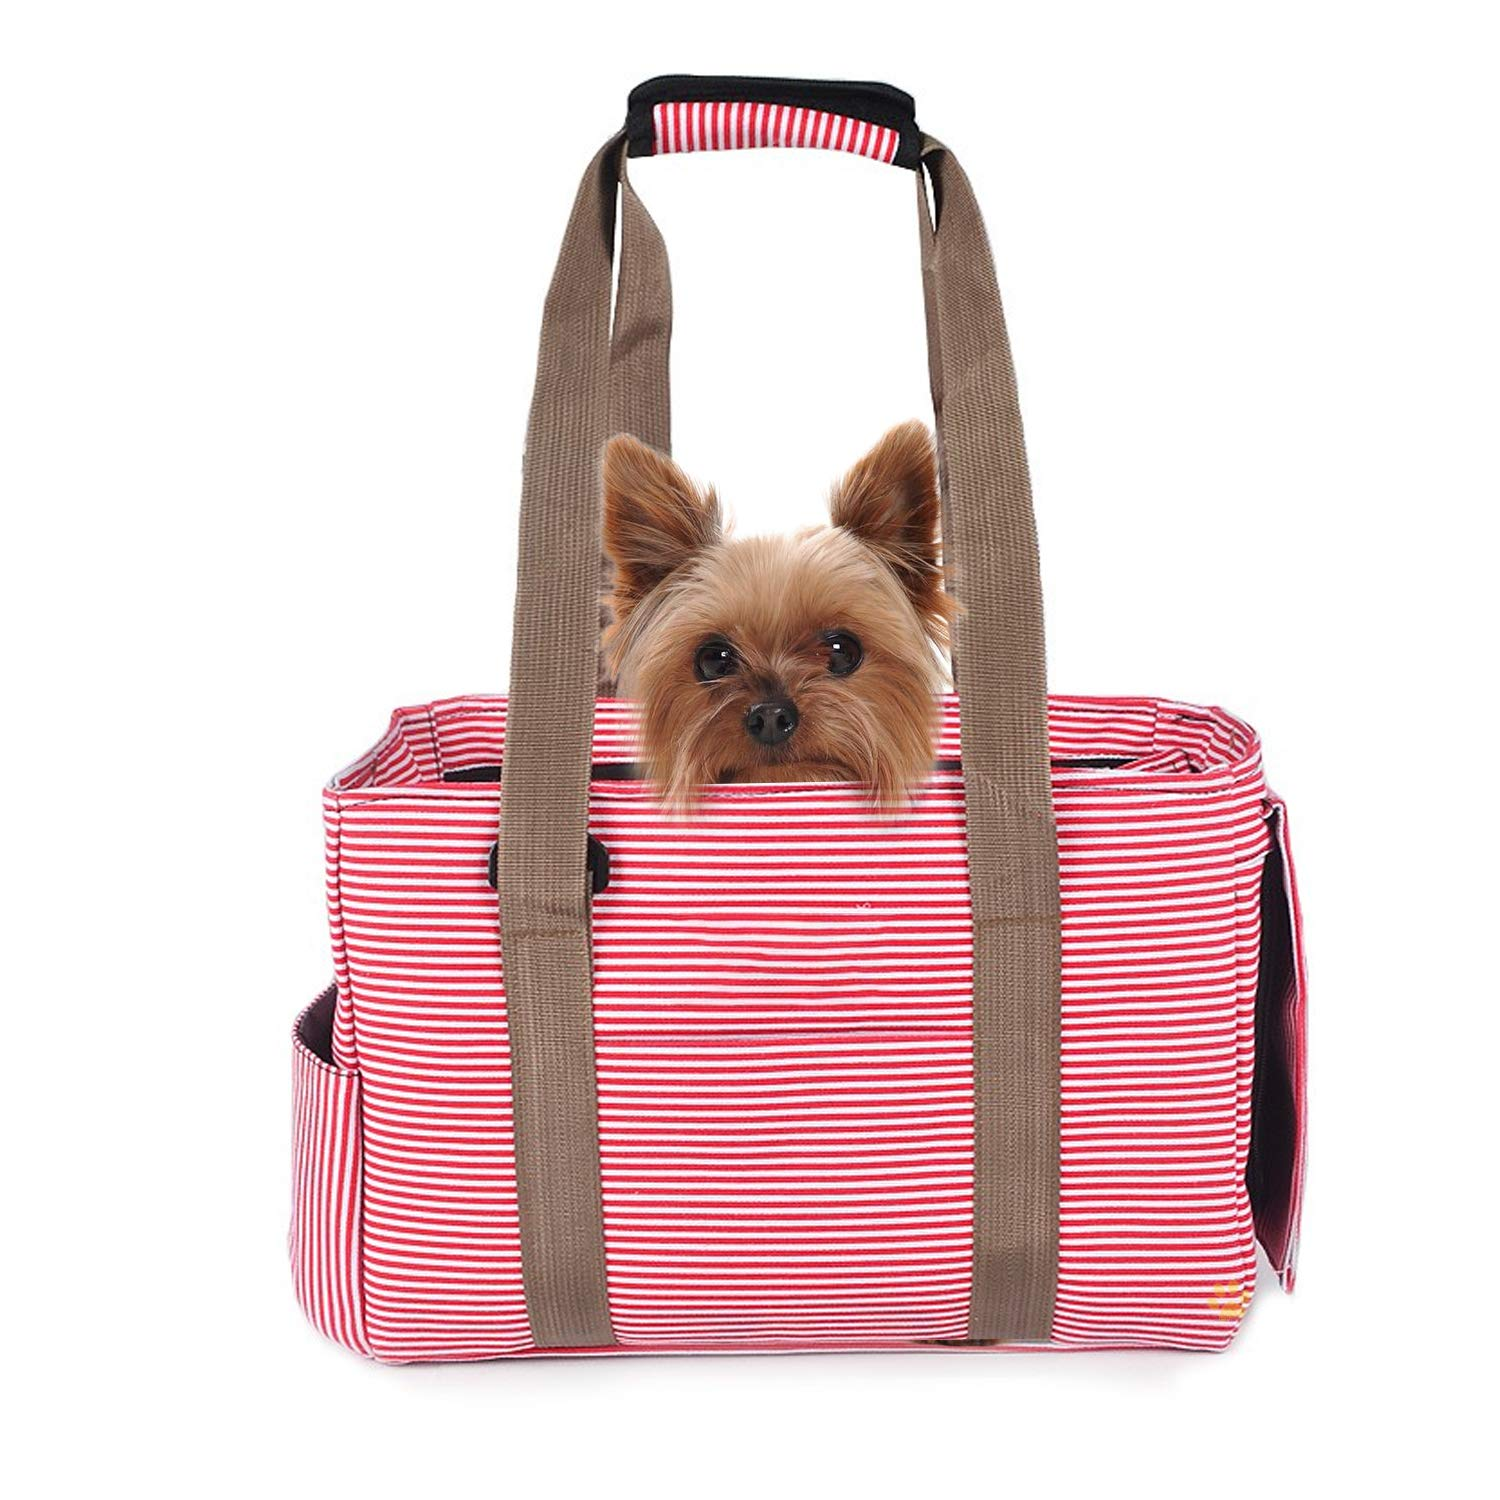 Pink M Pink M PETCUTE Pet Carrier Cat Carrier Bag Cat Carry Bag Travel Carriers for Small Animals Airline Approved Pet Travel Carrier (Pink, M)